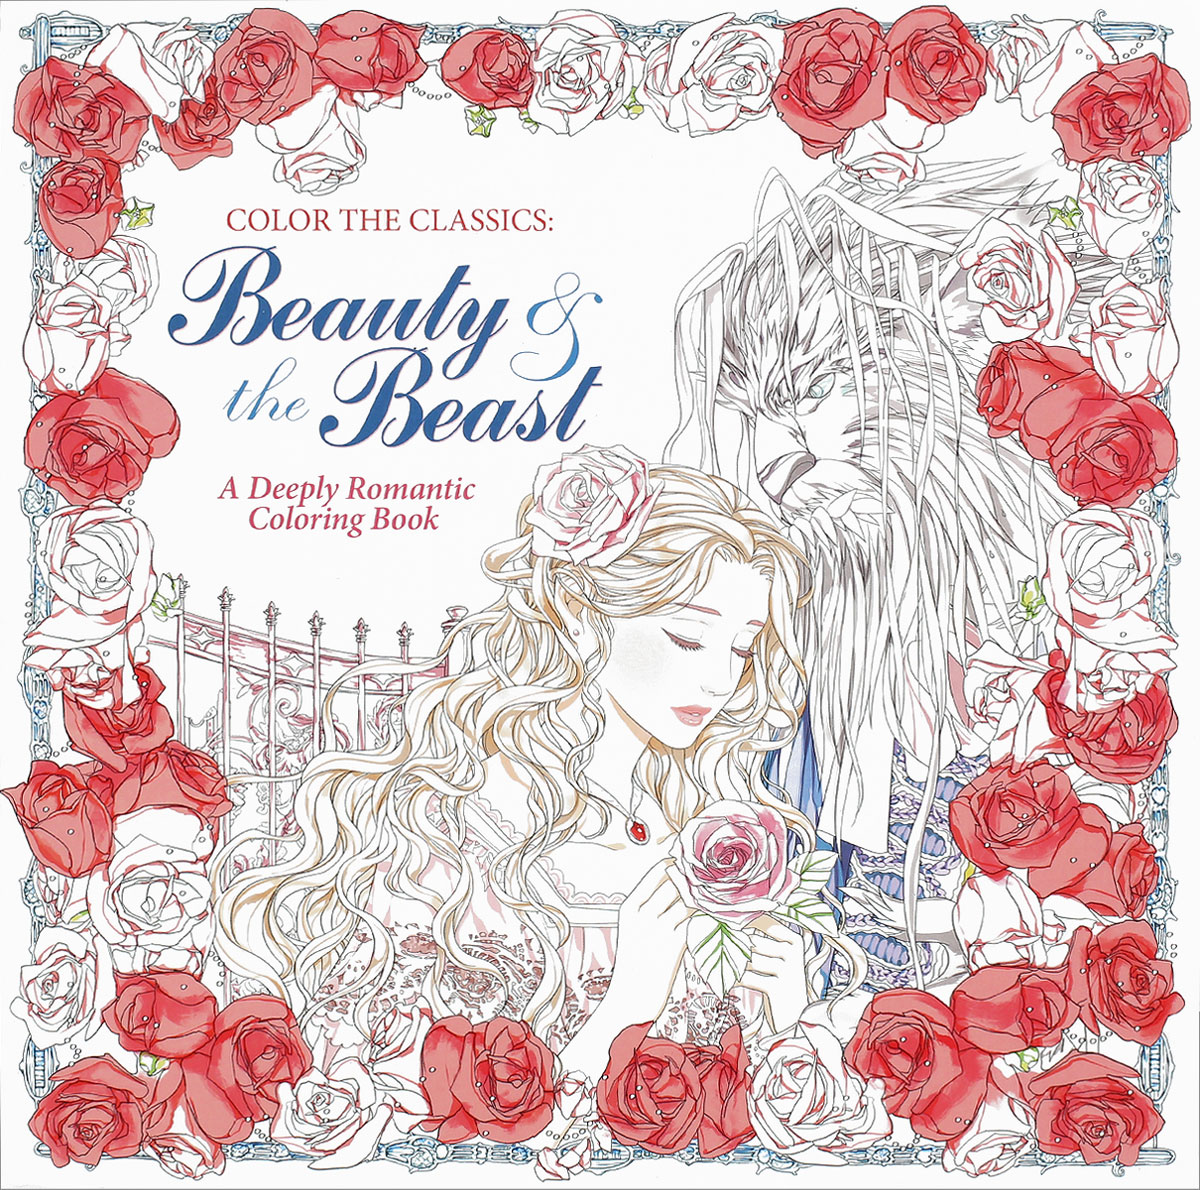 Color the Classics: Beauty & the Beast: A Deeply Romantic Coloring Book bella italia a coloring book tour of the world capital of romance